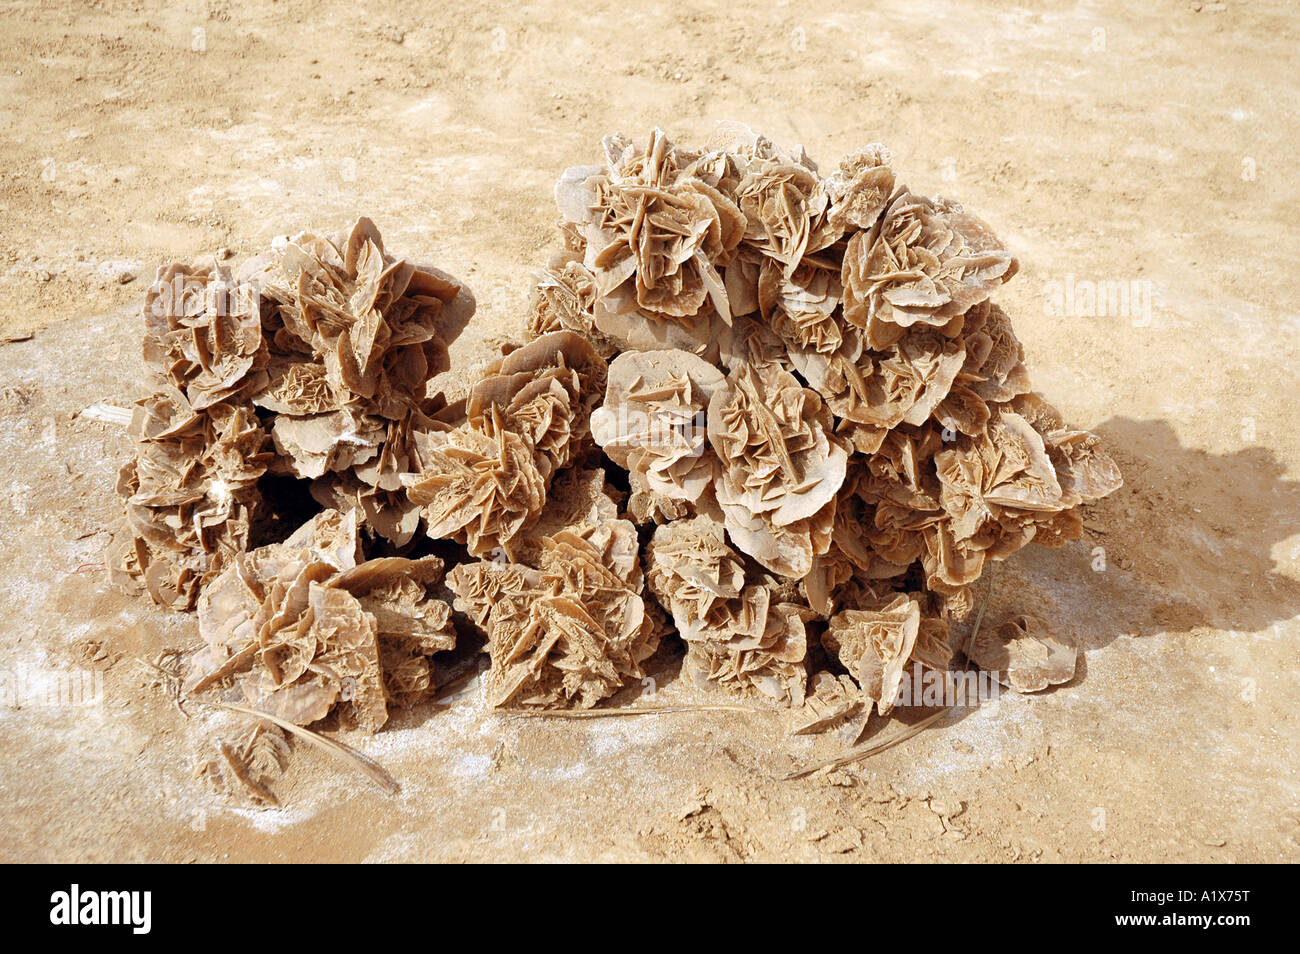 Souvenirs stall with desert roses on Sahara desert in Tunisia - Stock Image